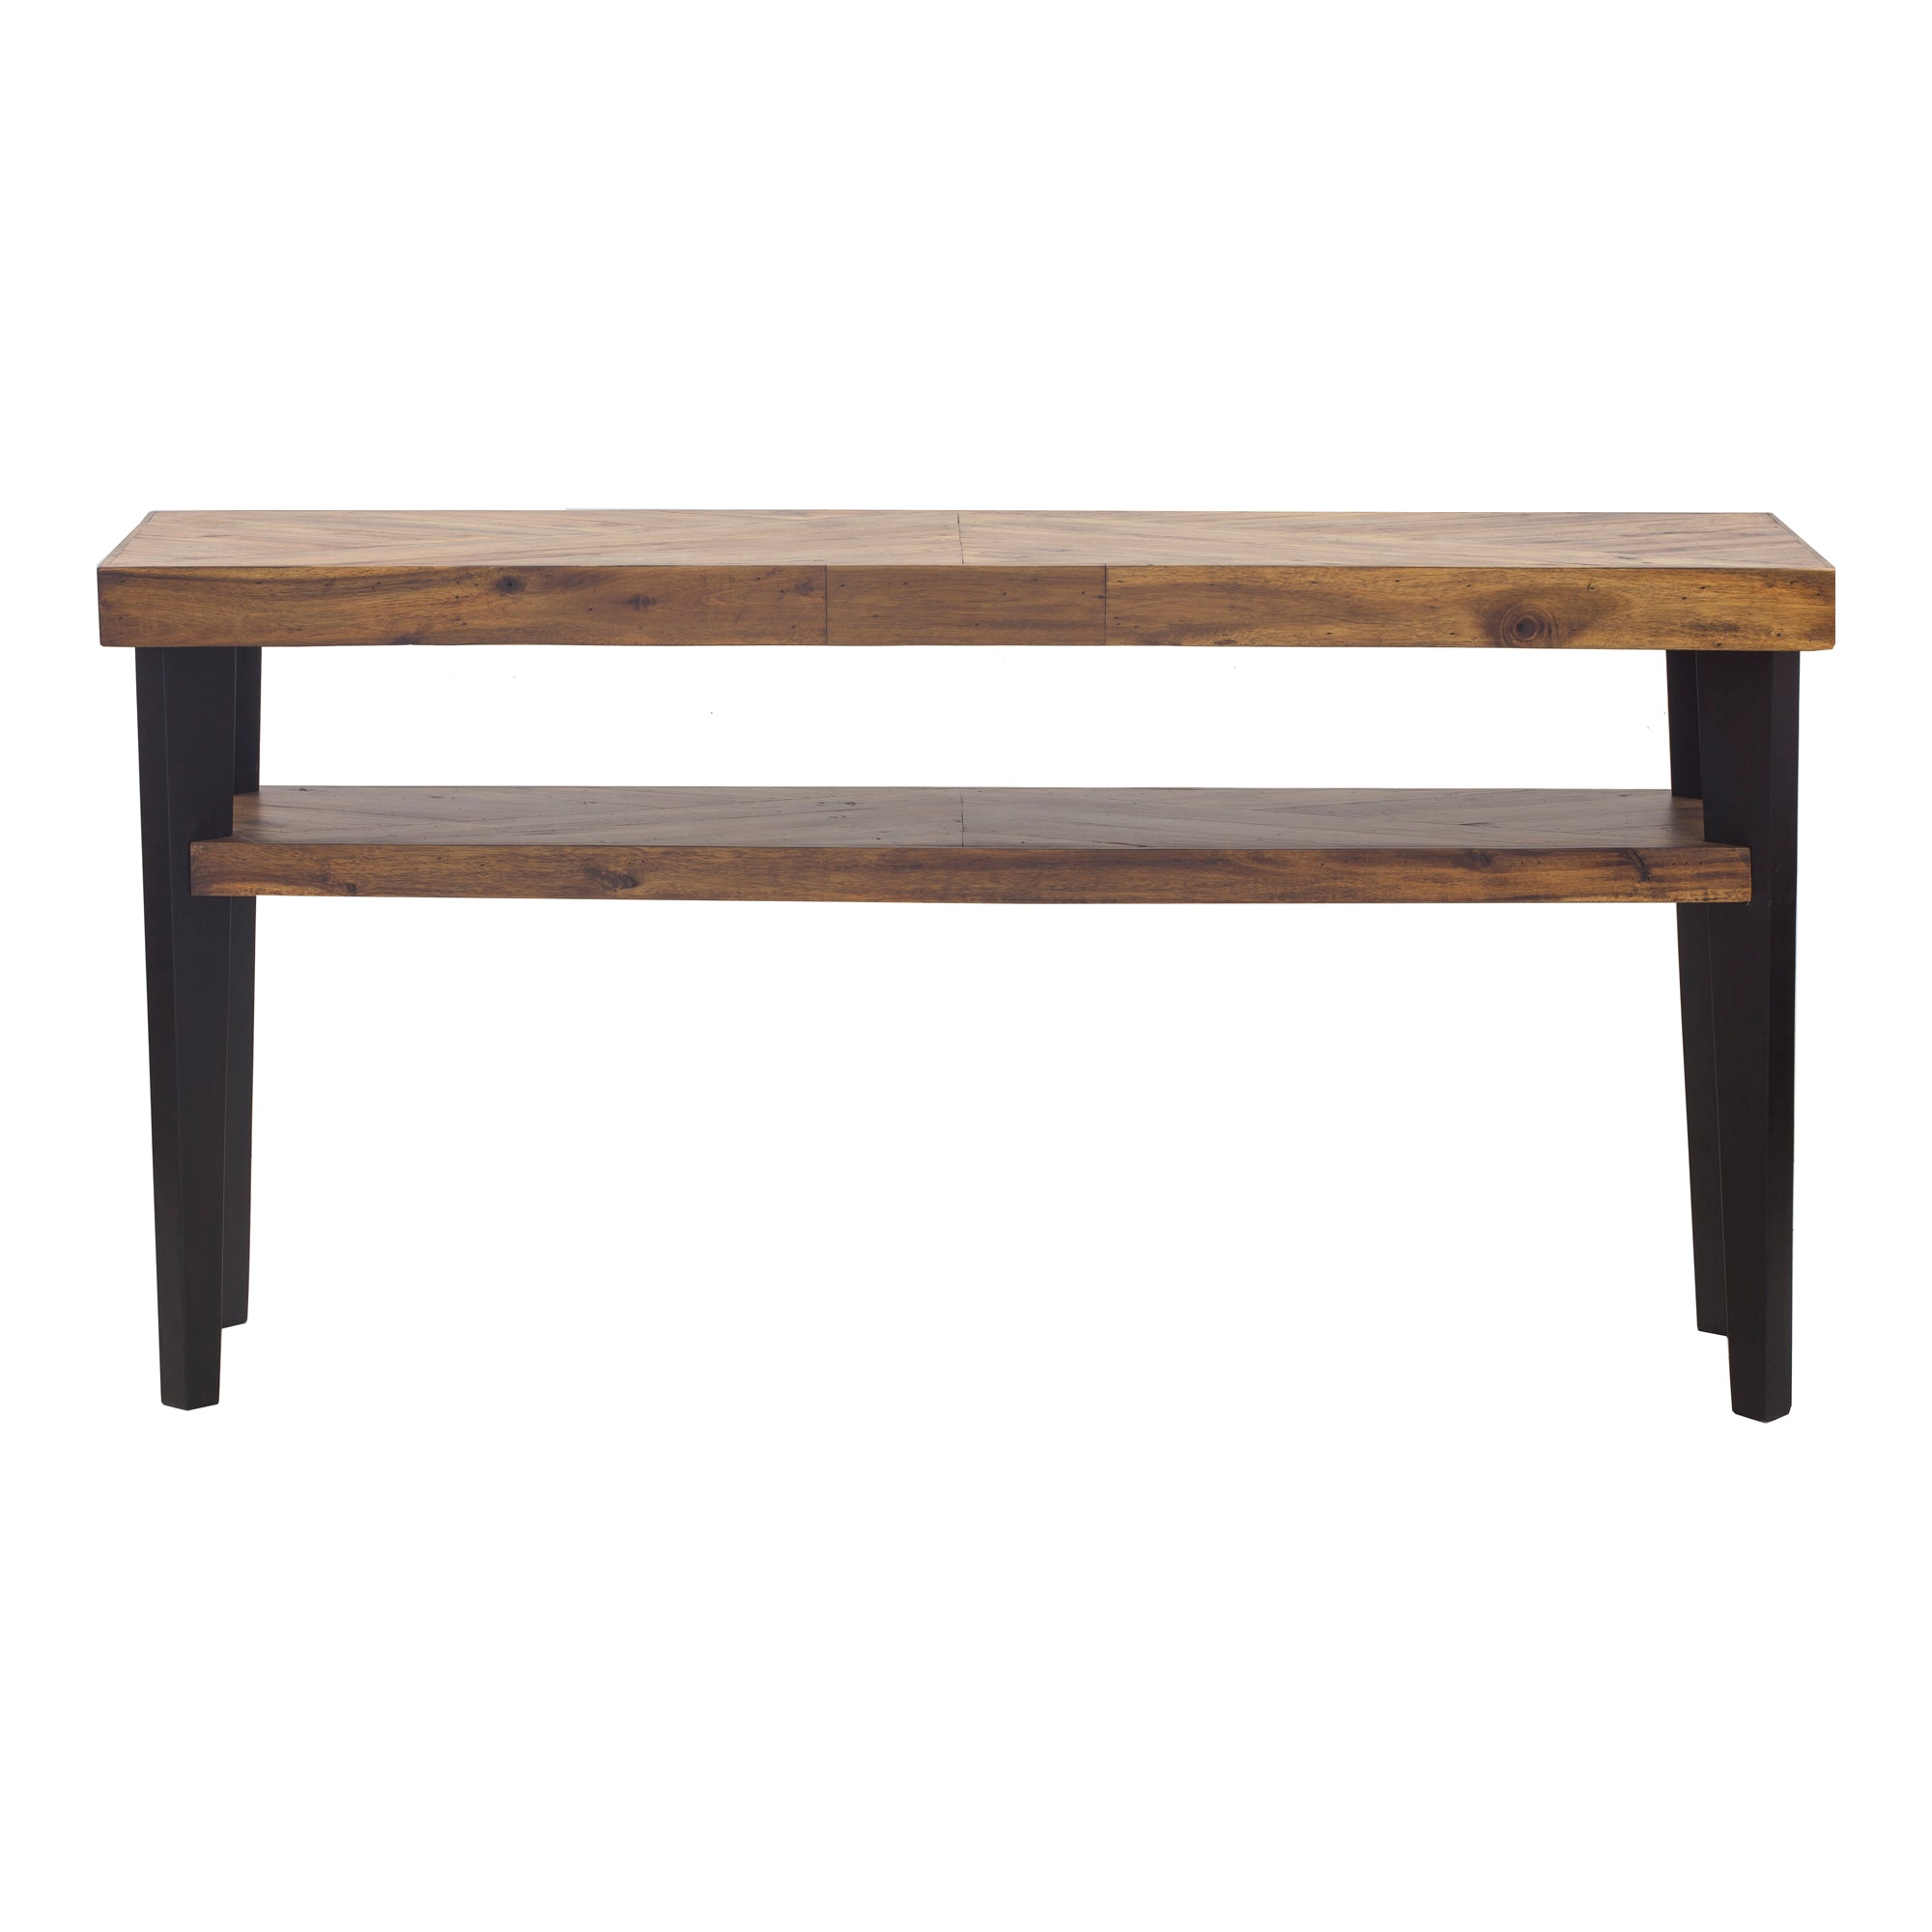 Parq console table, brown - Tops-Dress